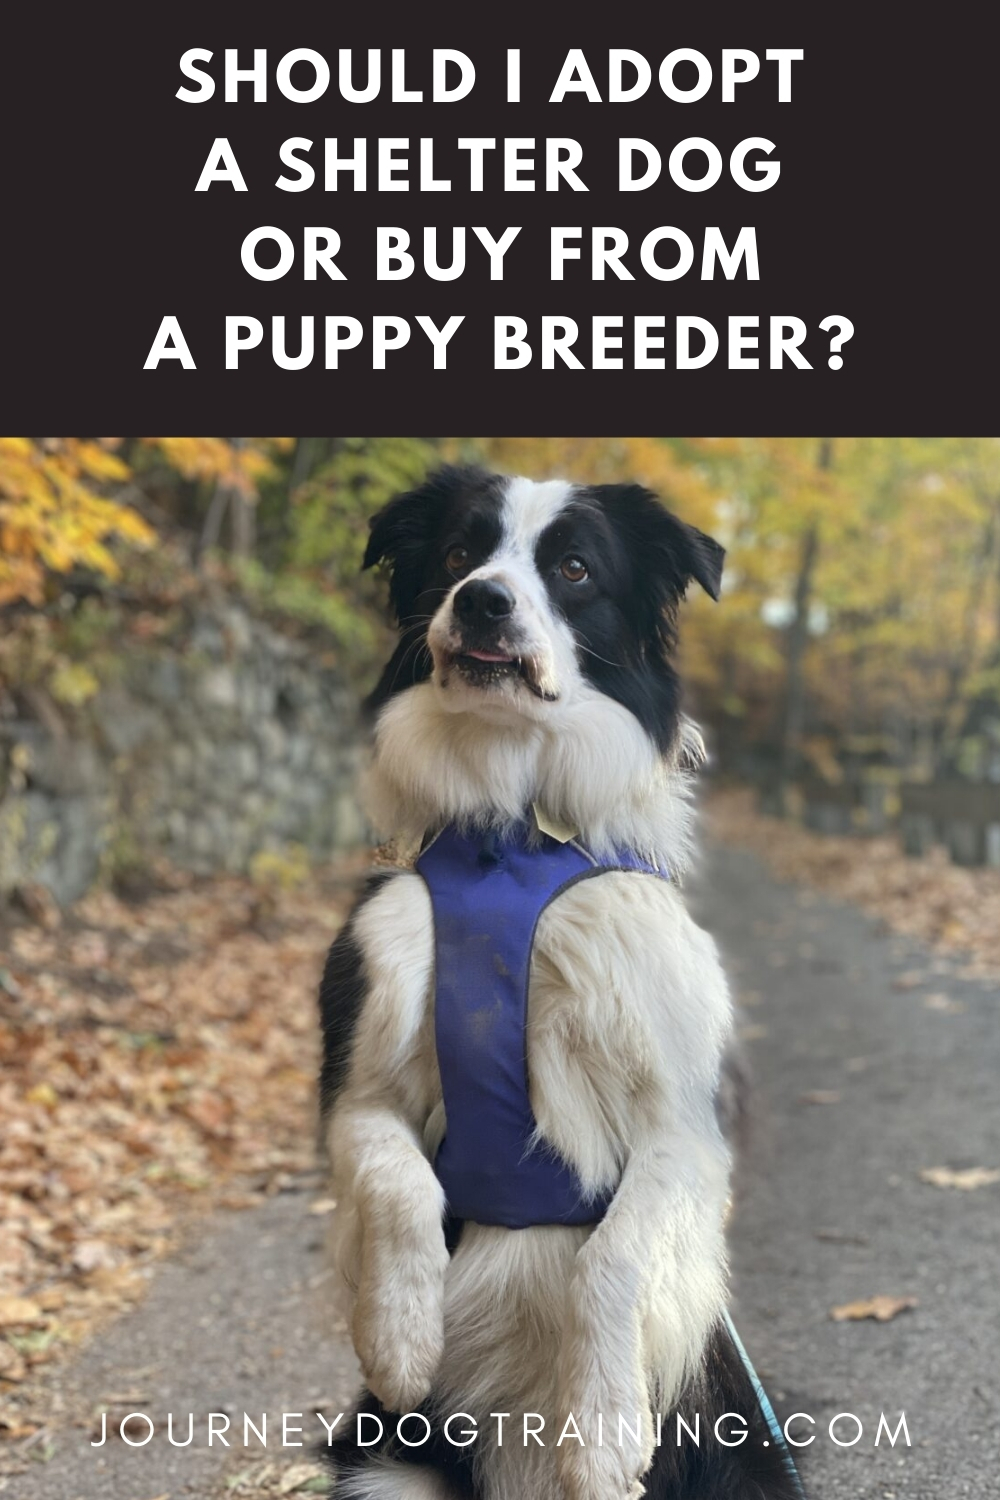 should i adopt a shelter dog or buy from a puppy breeder? | journeydogtraining.com